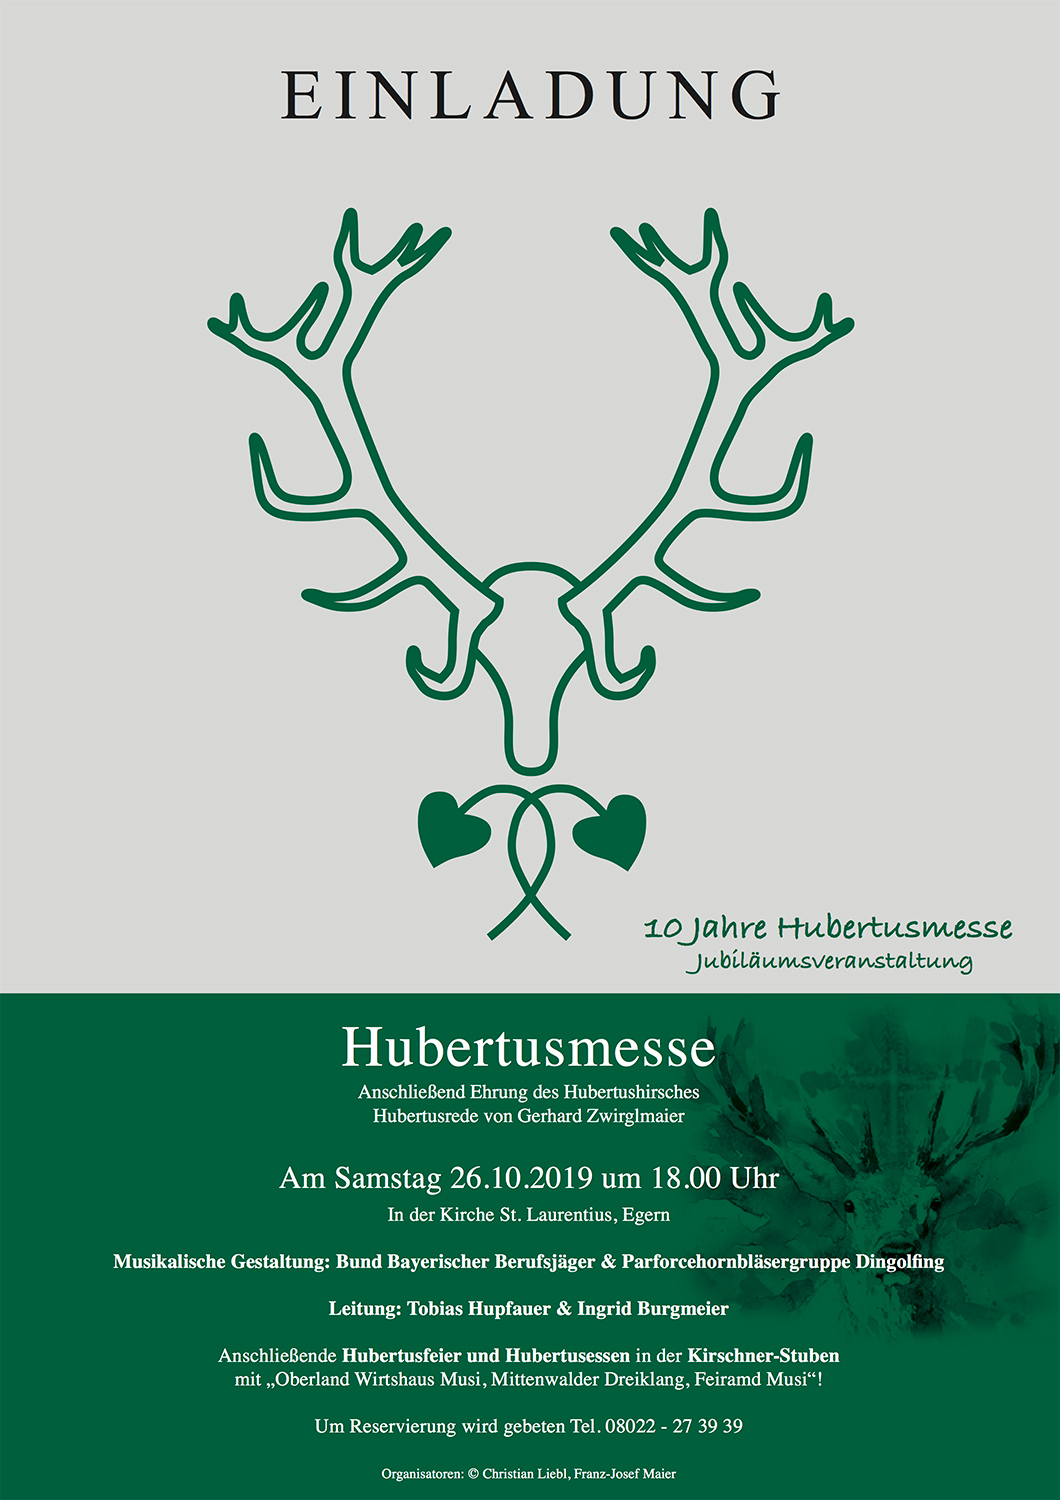 Hubertus celebration